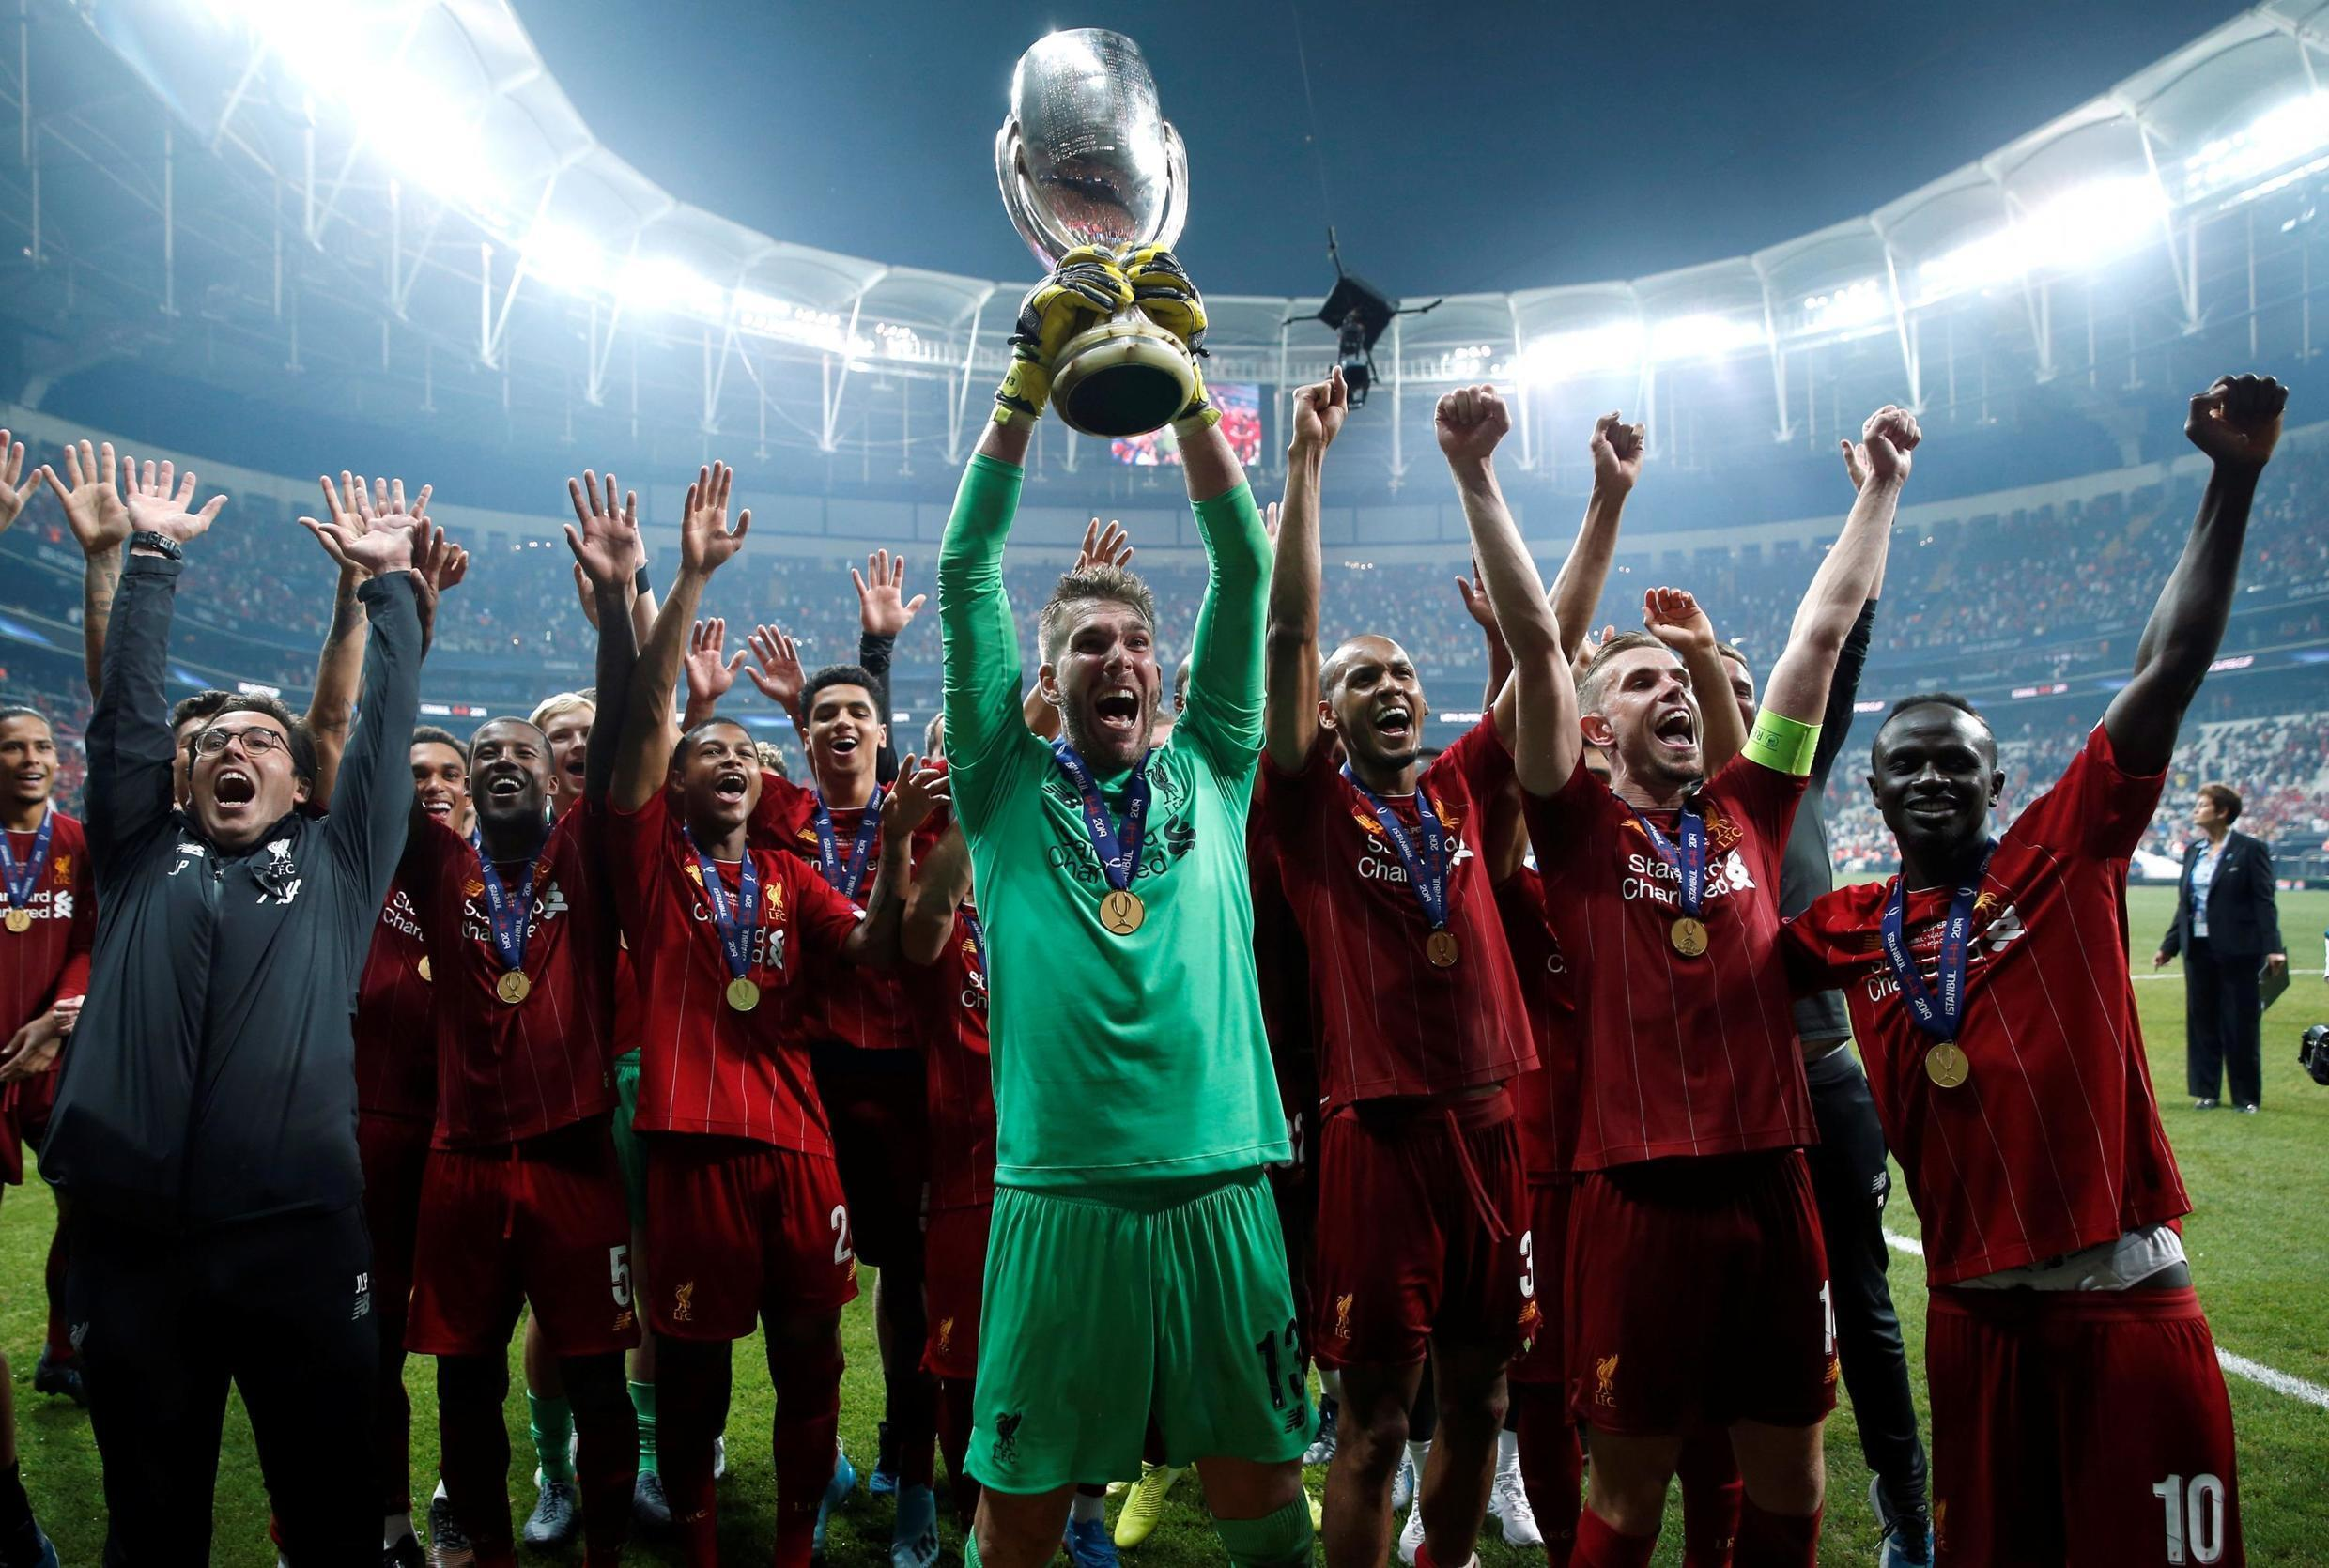 Soccer Football - UEFA Super Cup - Liverpool v Chelsea - Vodafone Arena, Istanbul, Turkey - August 14, 2019 Liverpool's Adrian lifts the trophy as he celebrates winning the UEFA Super Cup with team mates